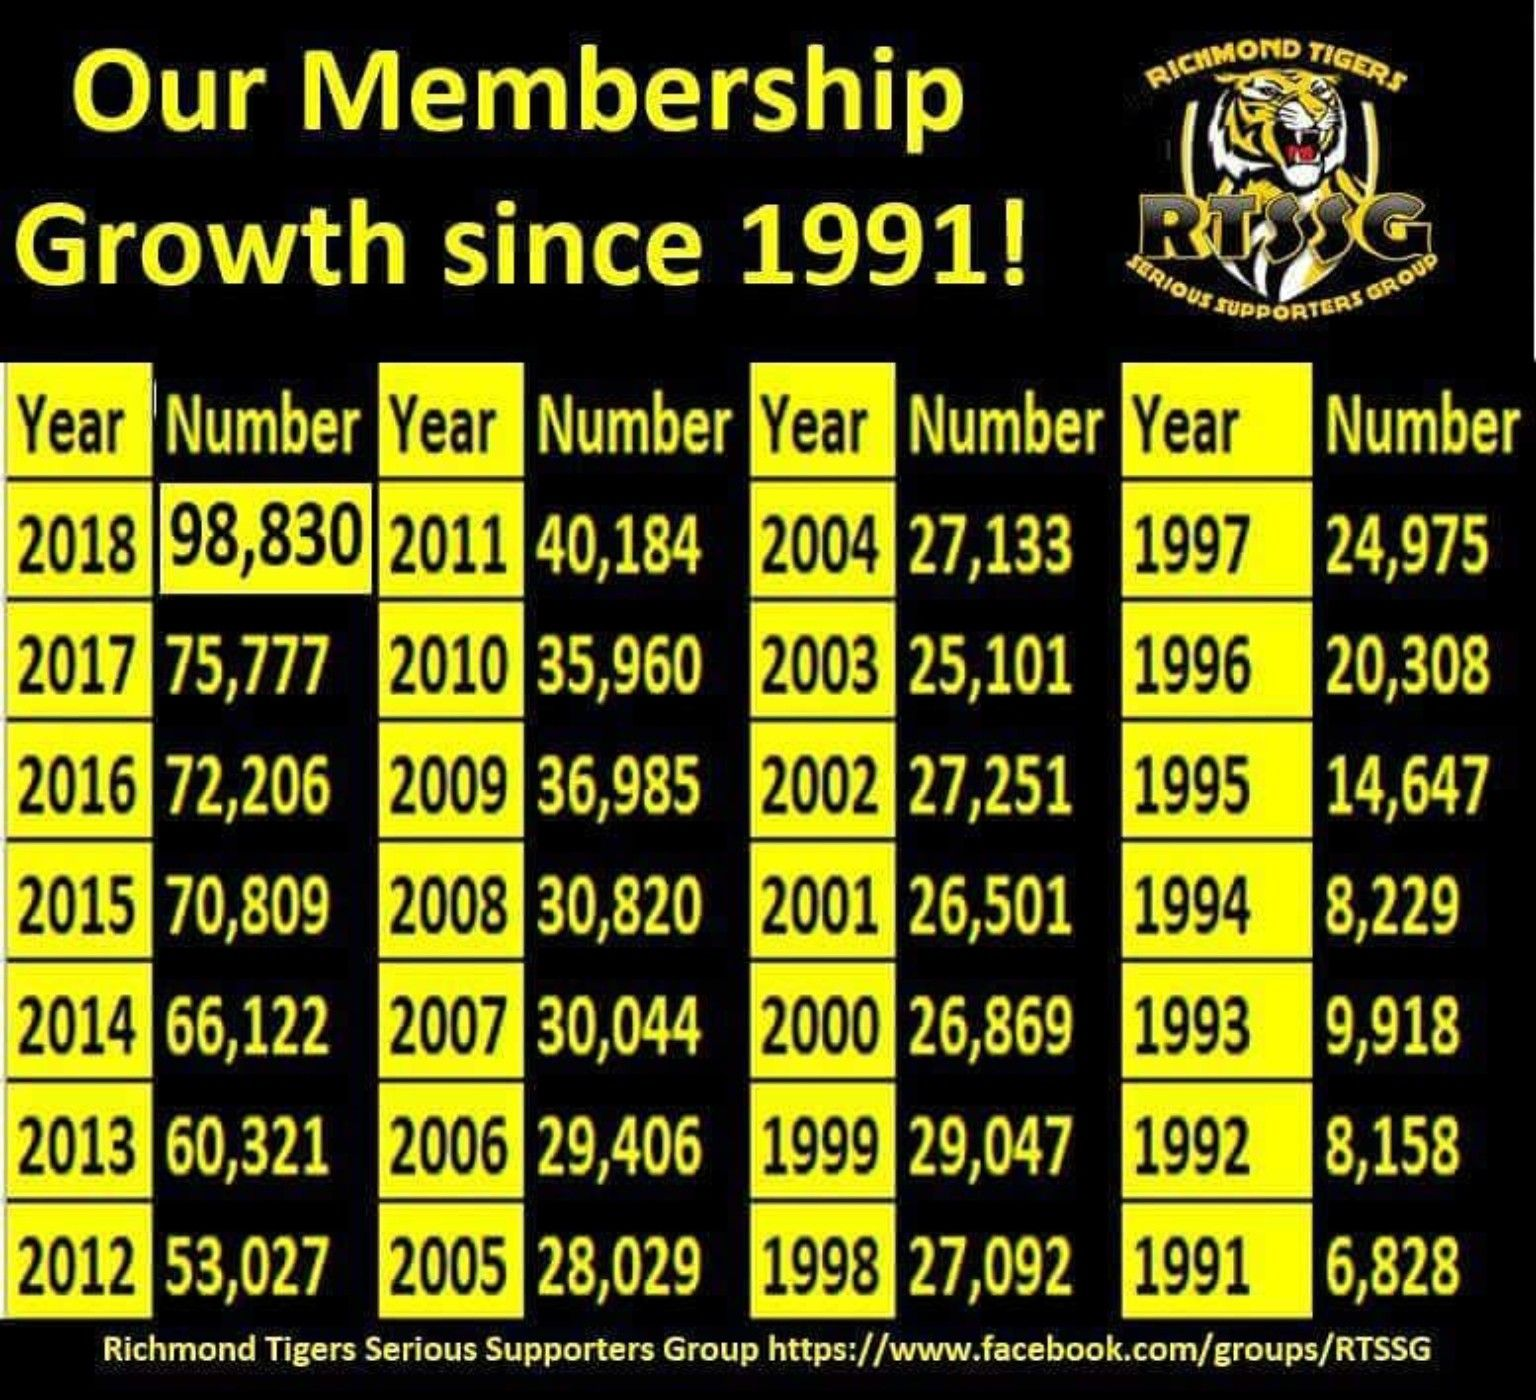 Membership history of the Richmond Football Club  We have now